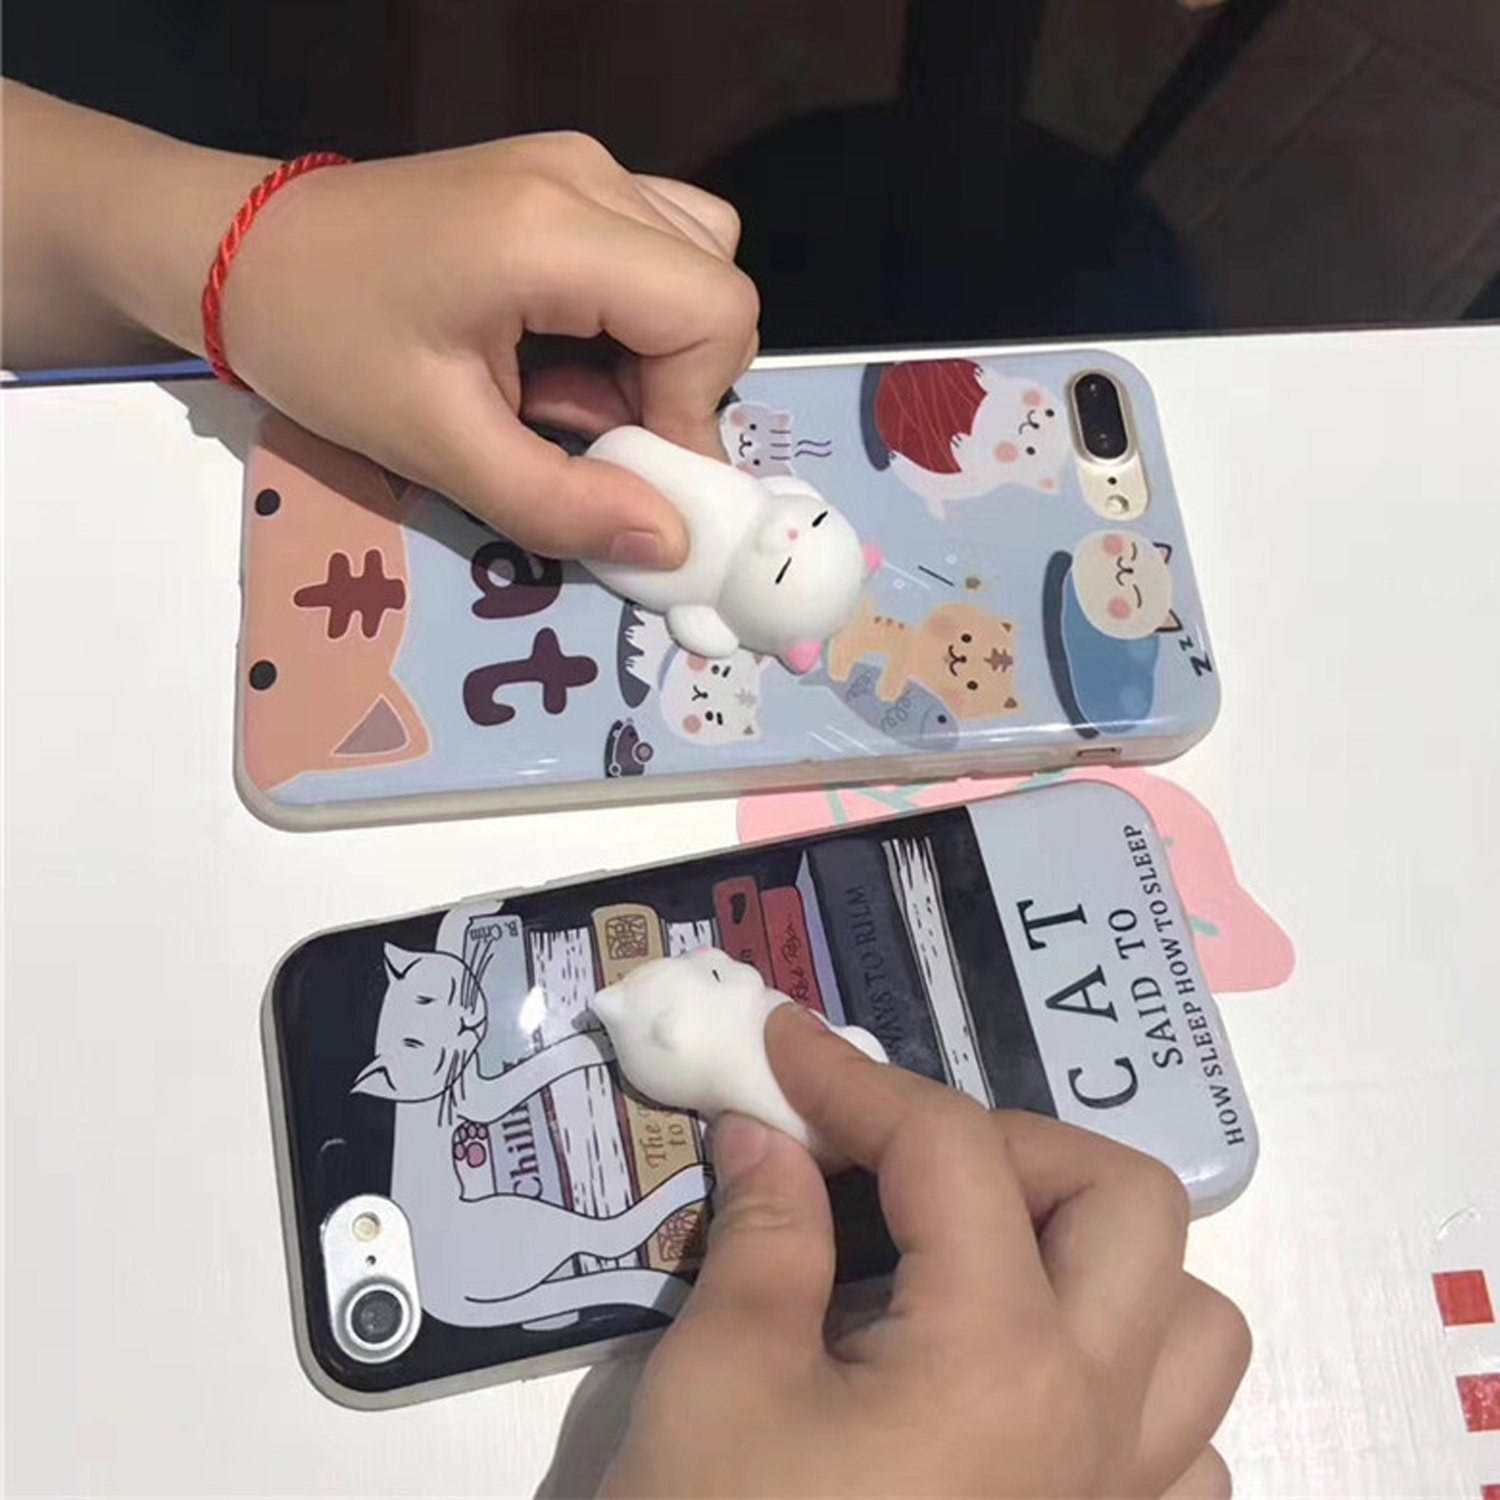 Squishy survival 9 - A Phone Case With A Squishy Cat Belly On The Back A Whole New Way To Play With Your Phone